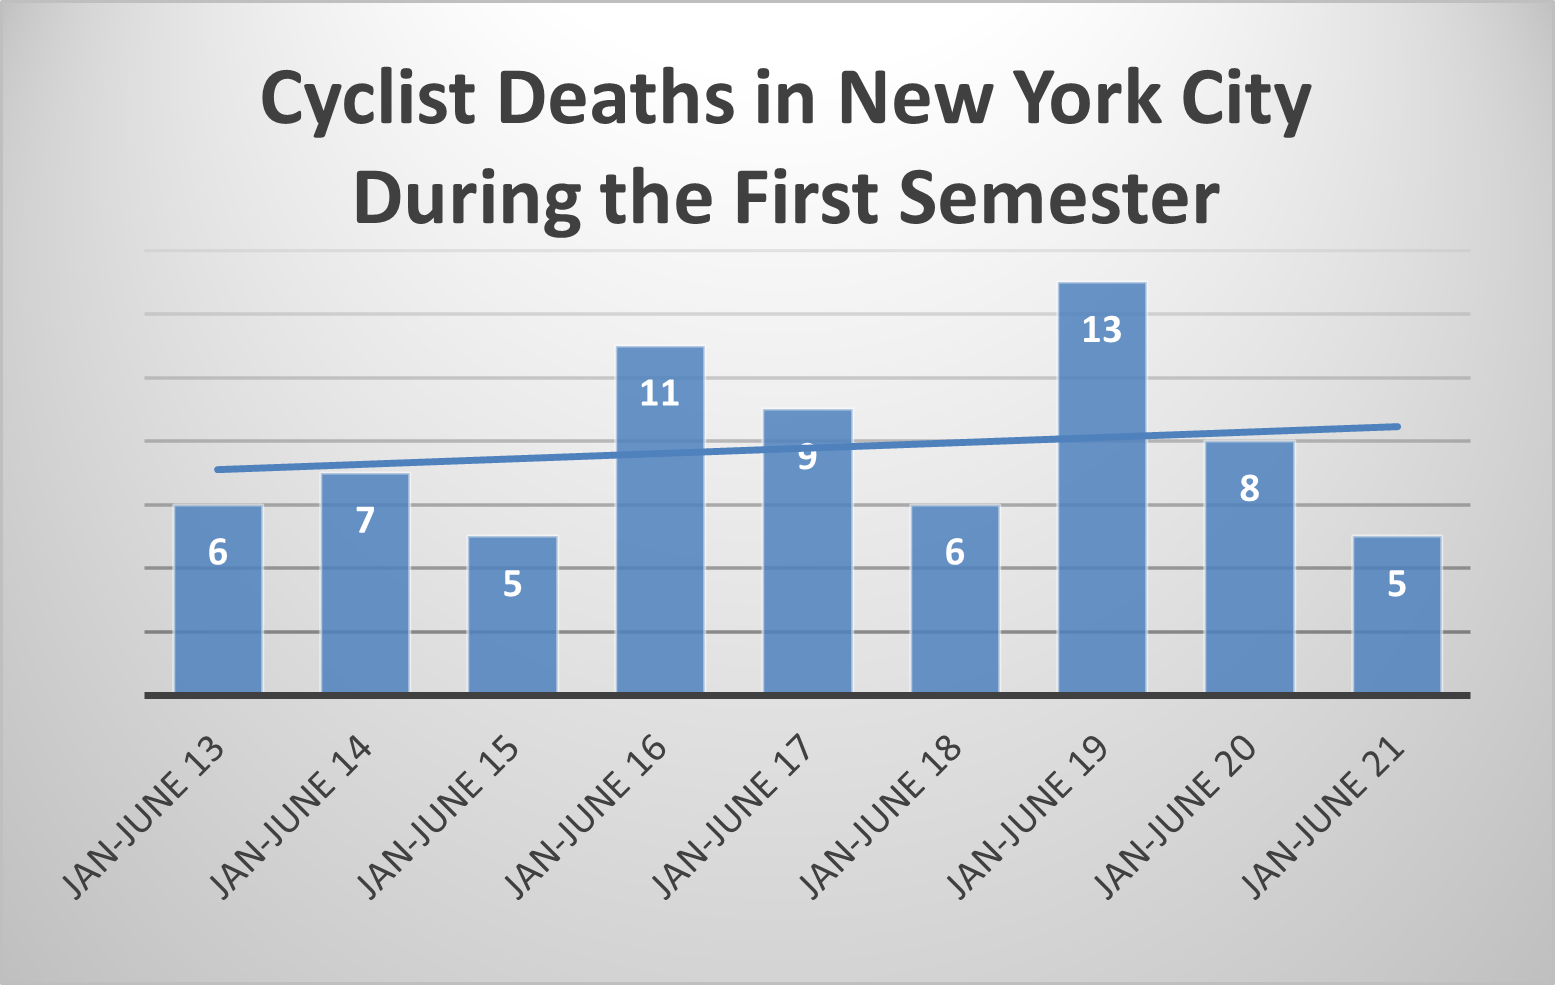 bicycle accident fatalities New York 1st semester